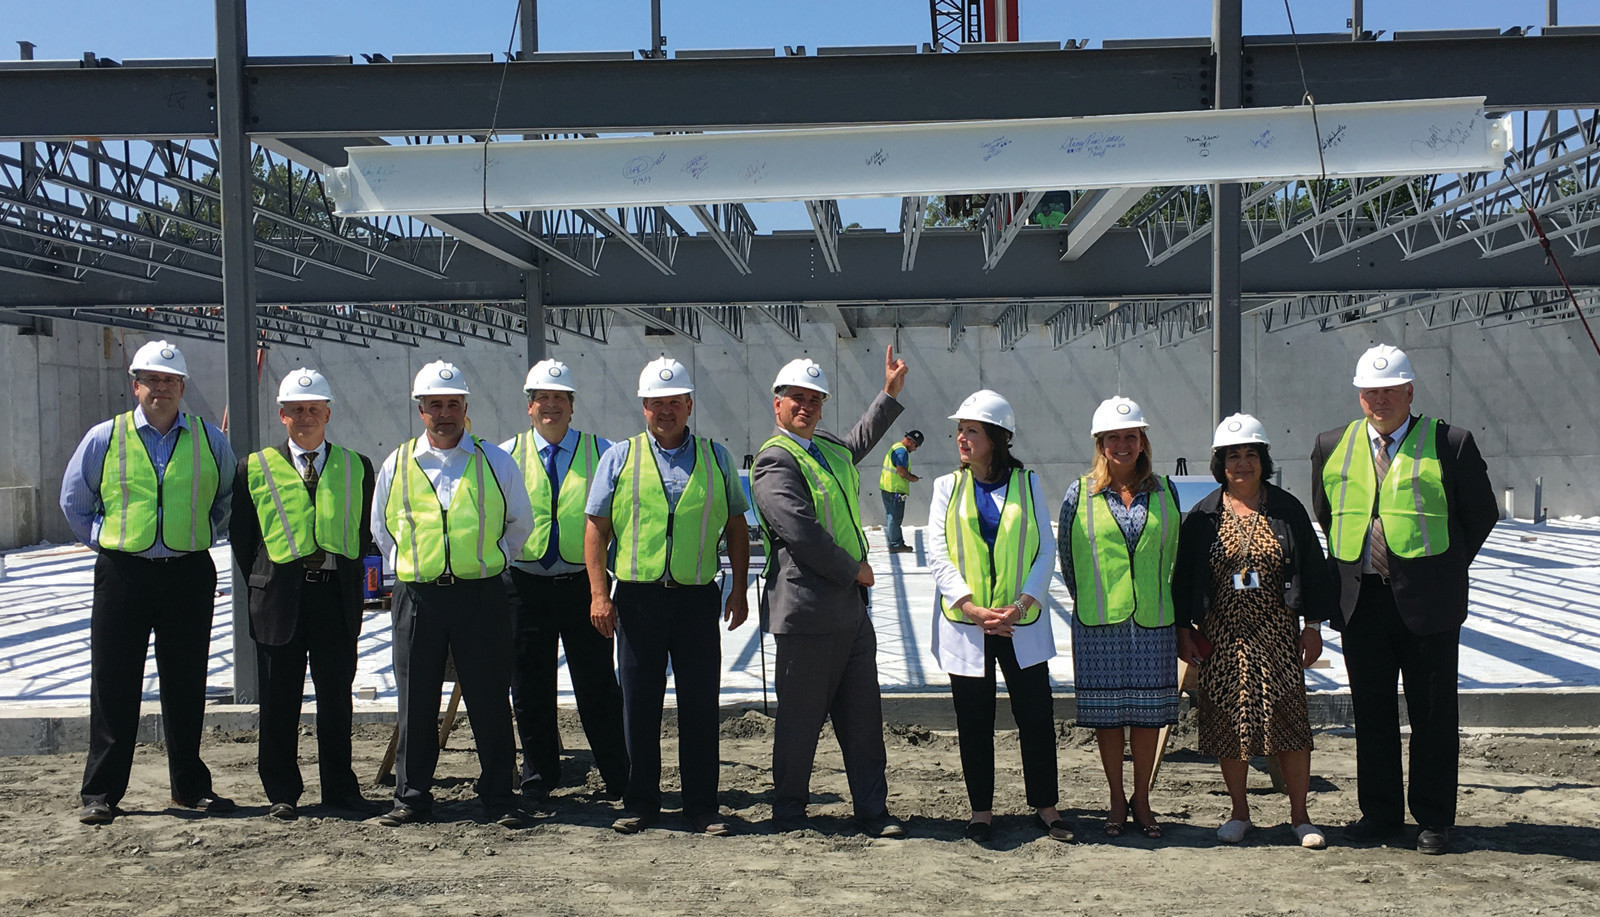 PROUD OF THEIR WORK: Attorney General Peter Kilmartin points up at the steel beam that he and his employees signed at the new Customer Service Center's topping off ceremony last Wednesday.